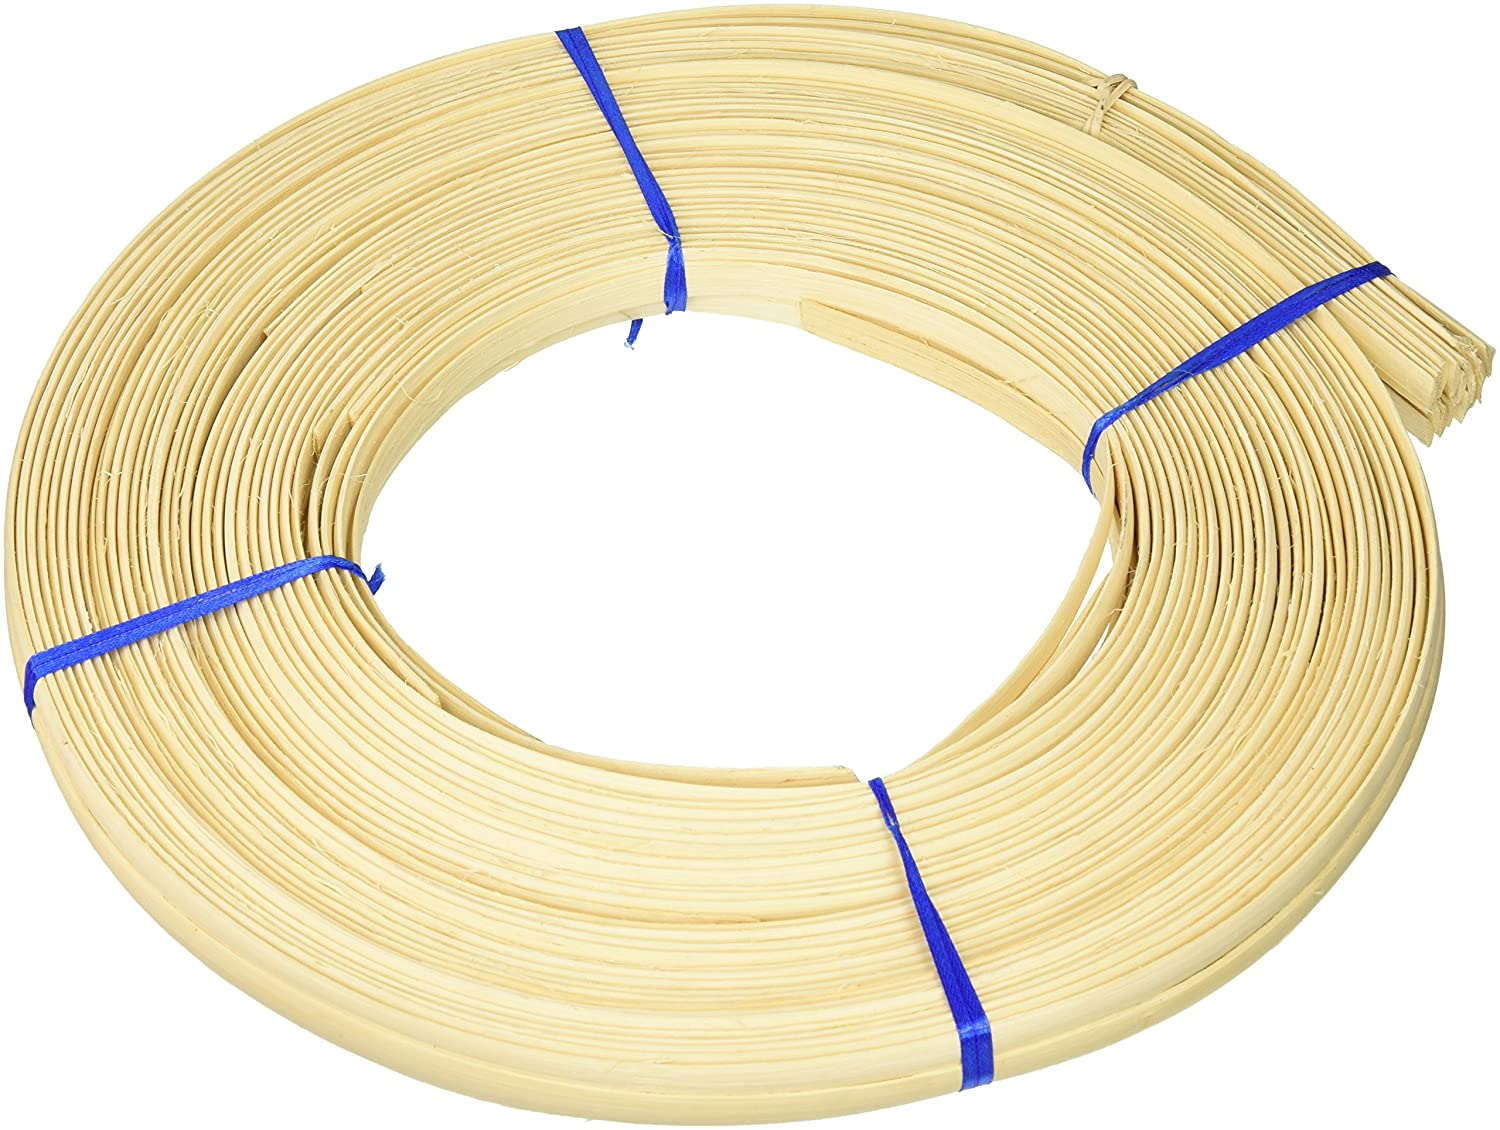 Commonwealth Basket Flat Oval Reed 3/8-Inch 1-Pound Coil, Approximately, 175-Feet 38FOC